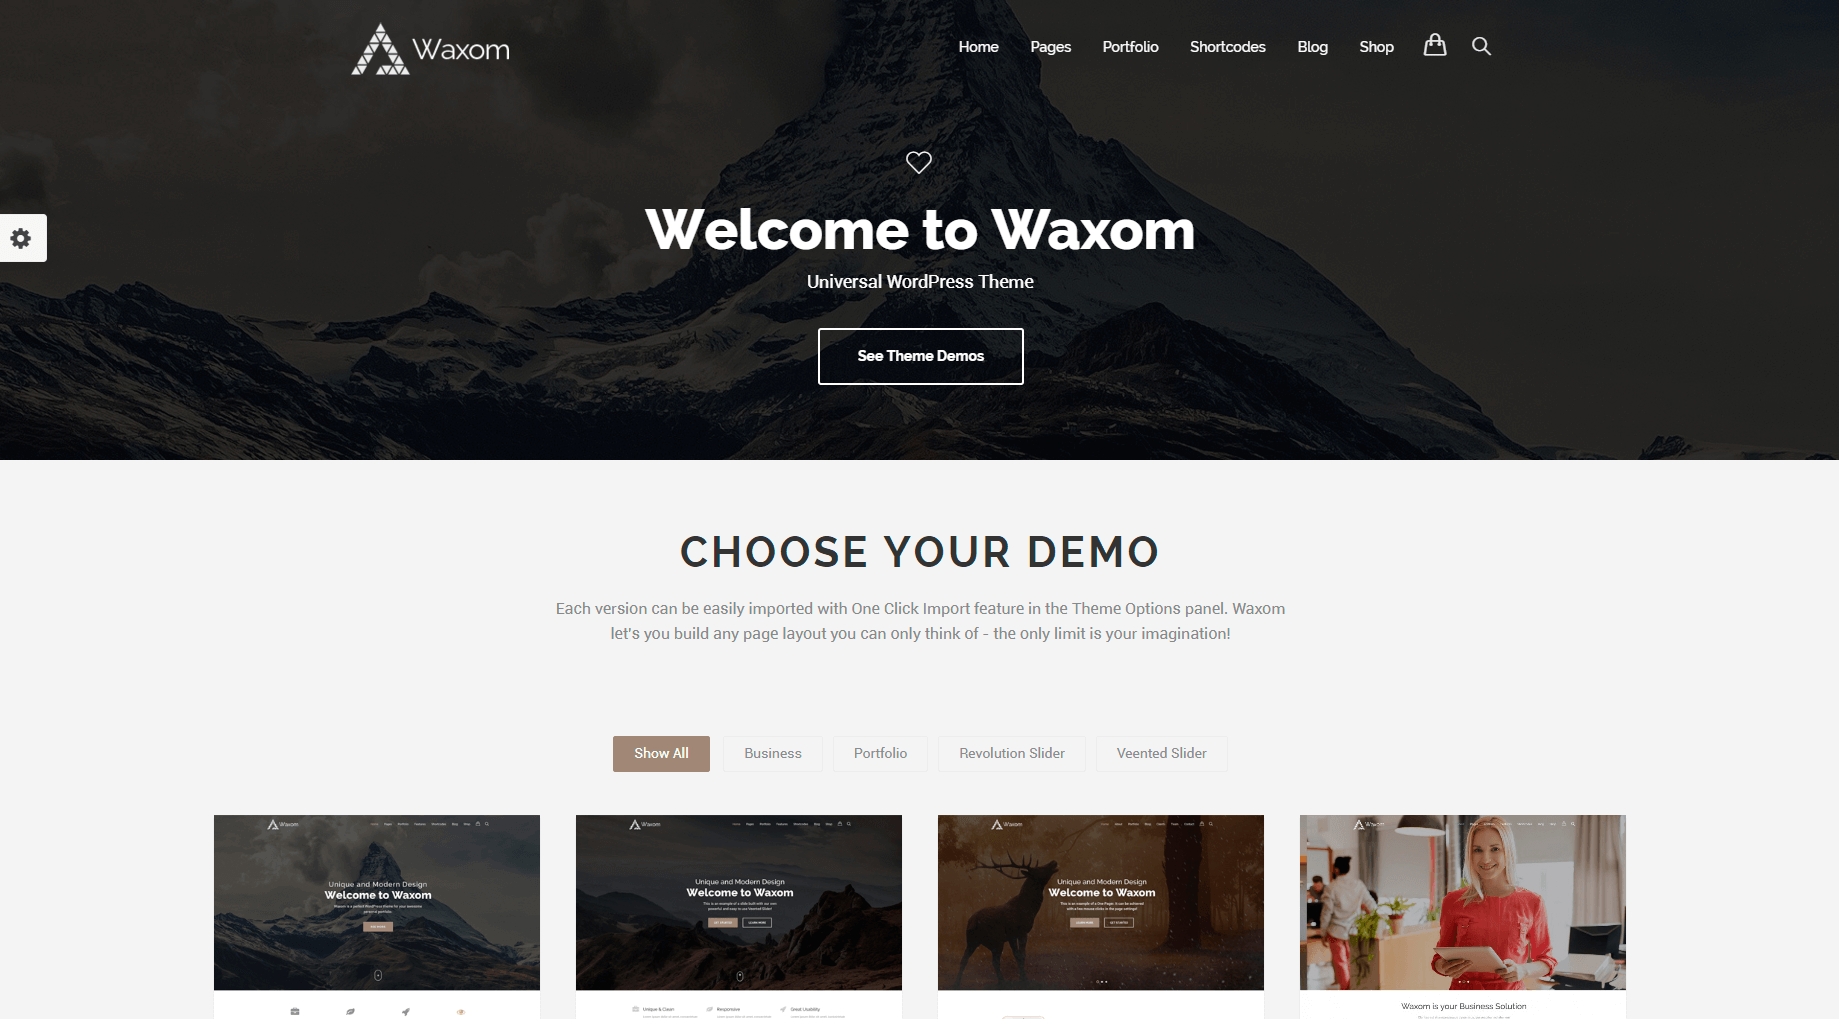 PSD template of the landing page is made in a modern clean